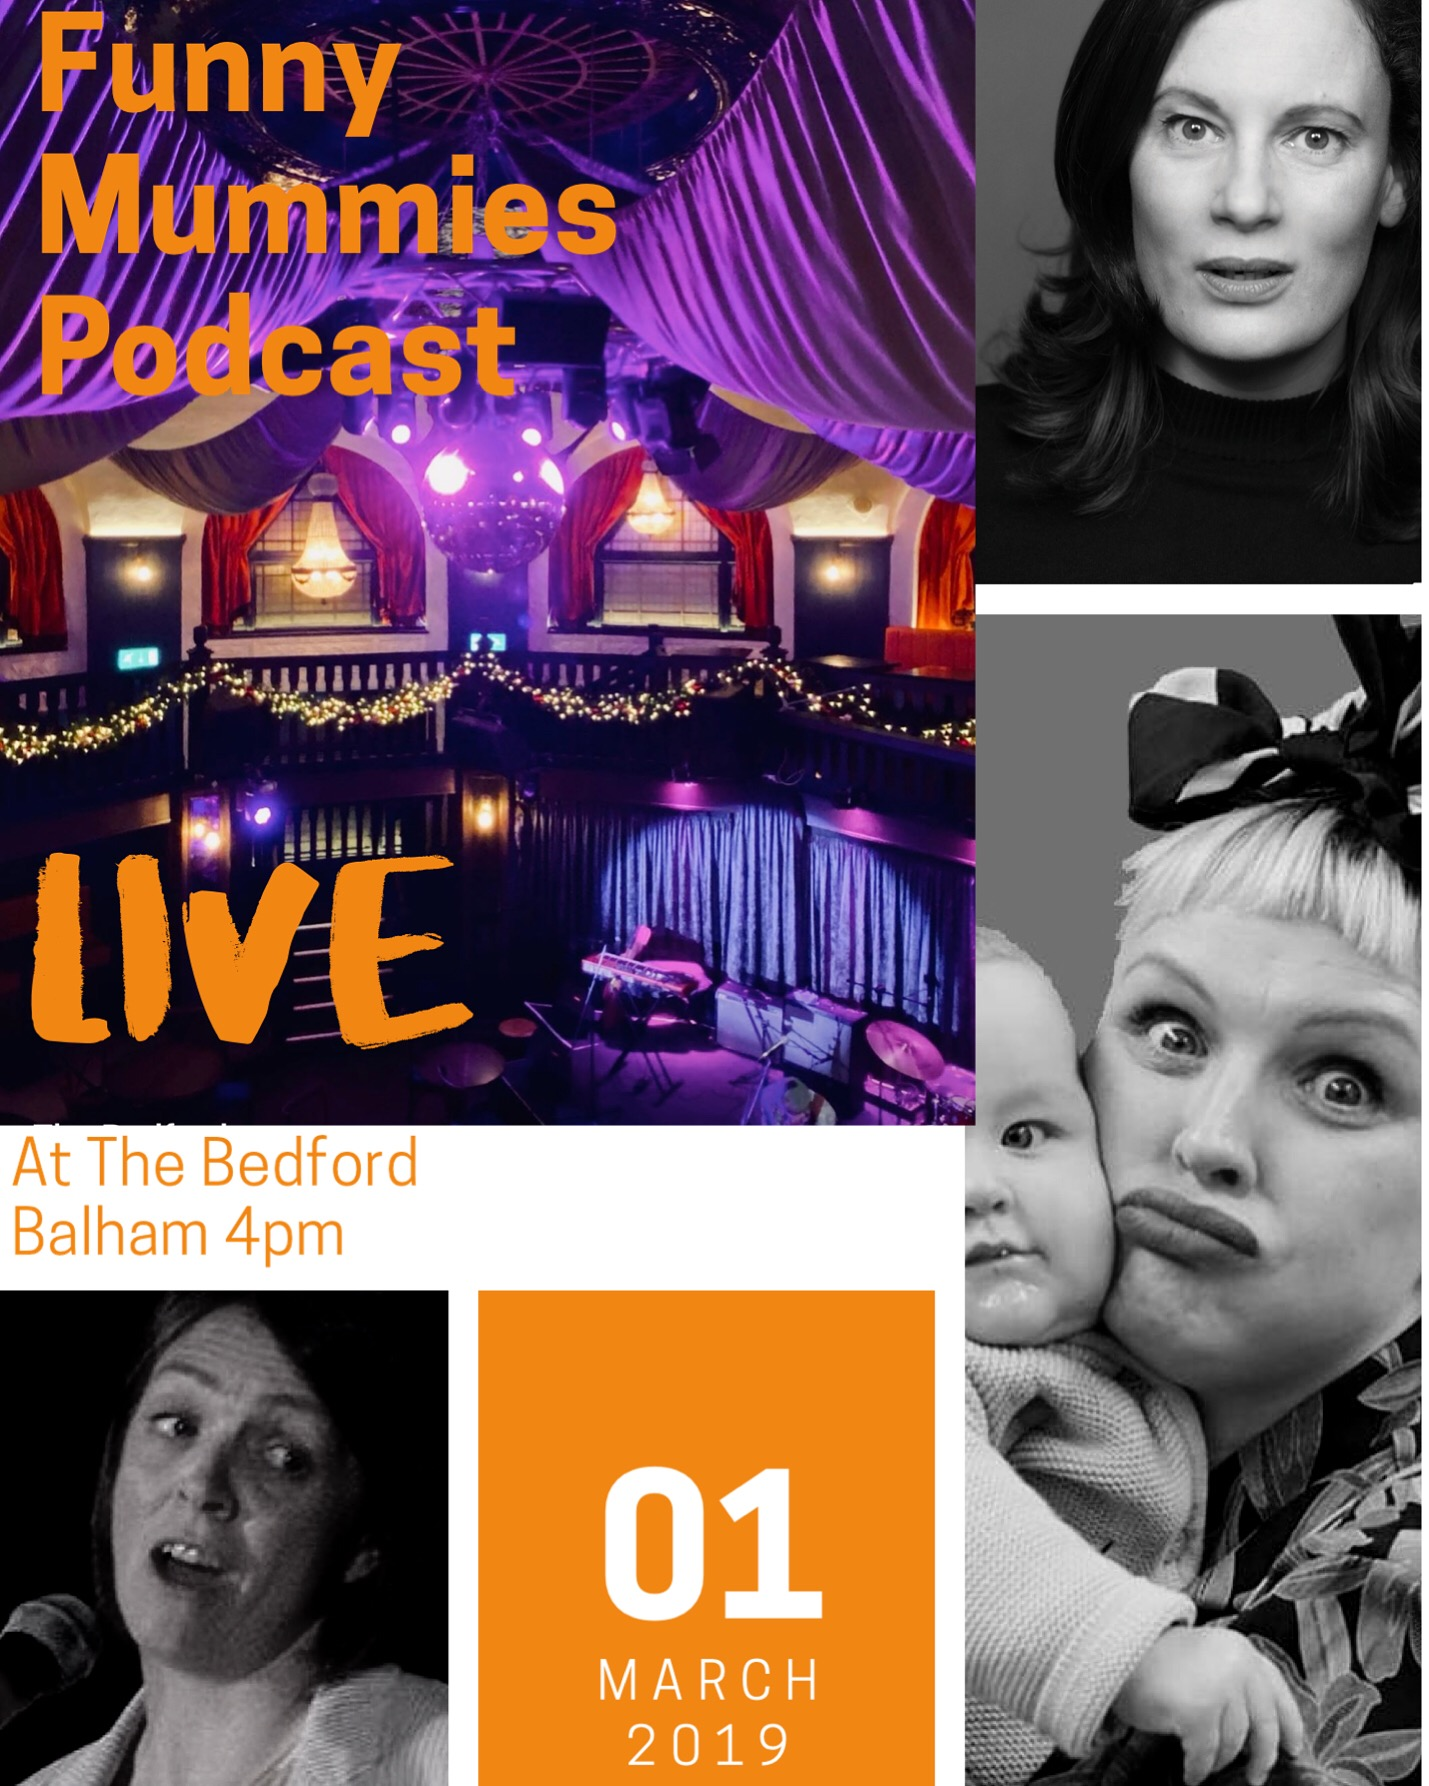 Funny Mummies Podcast Live